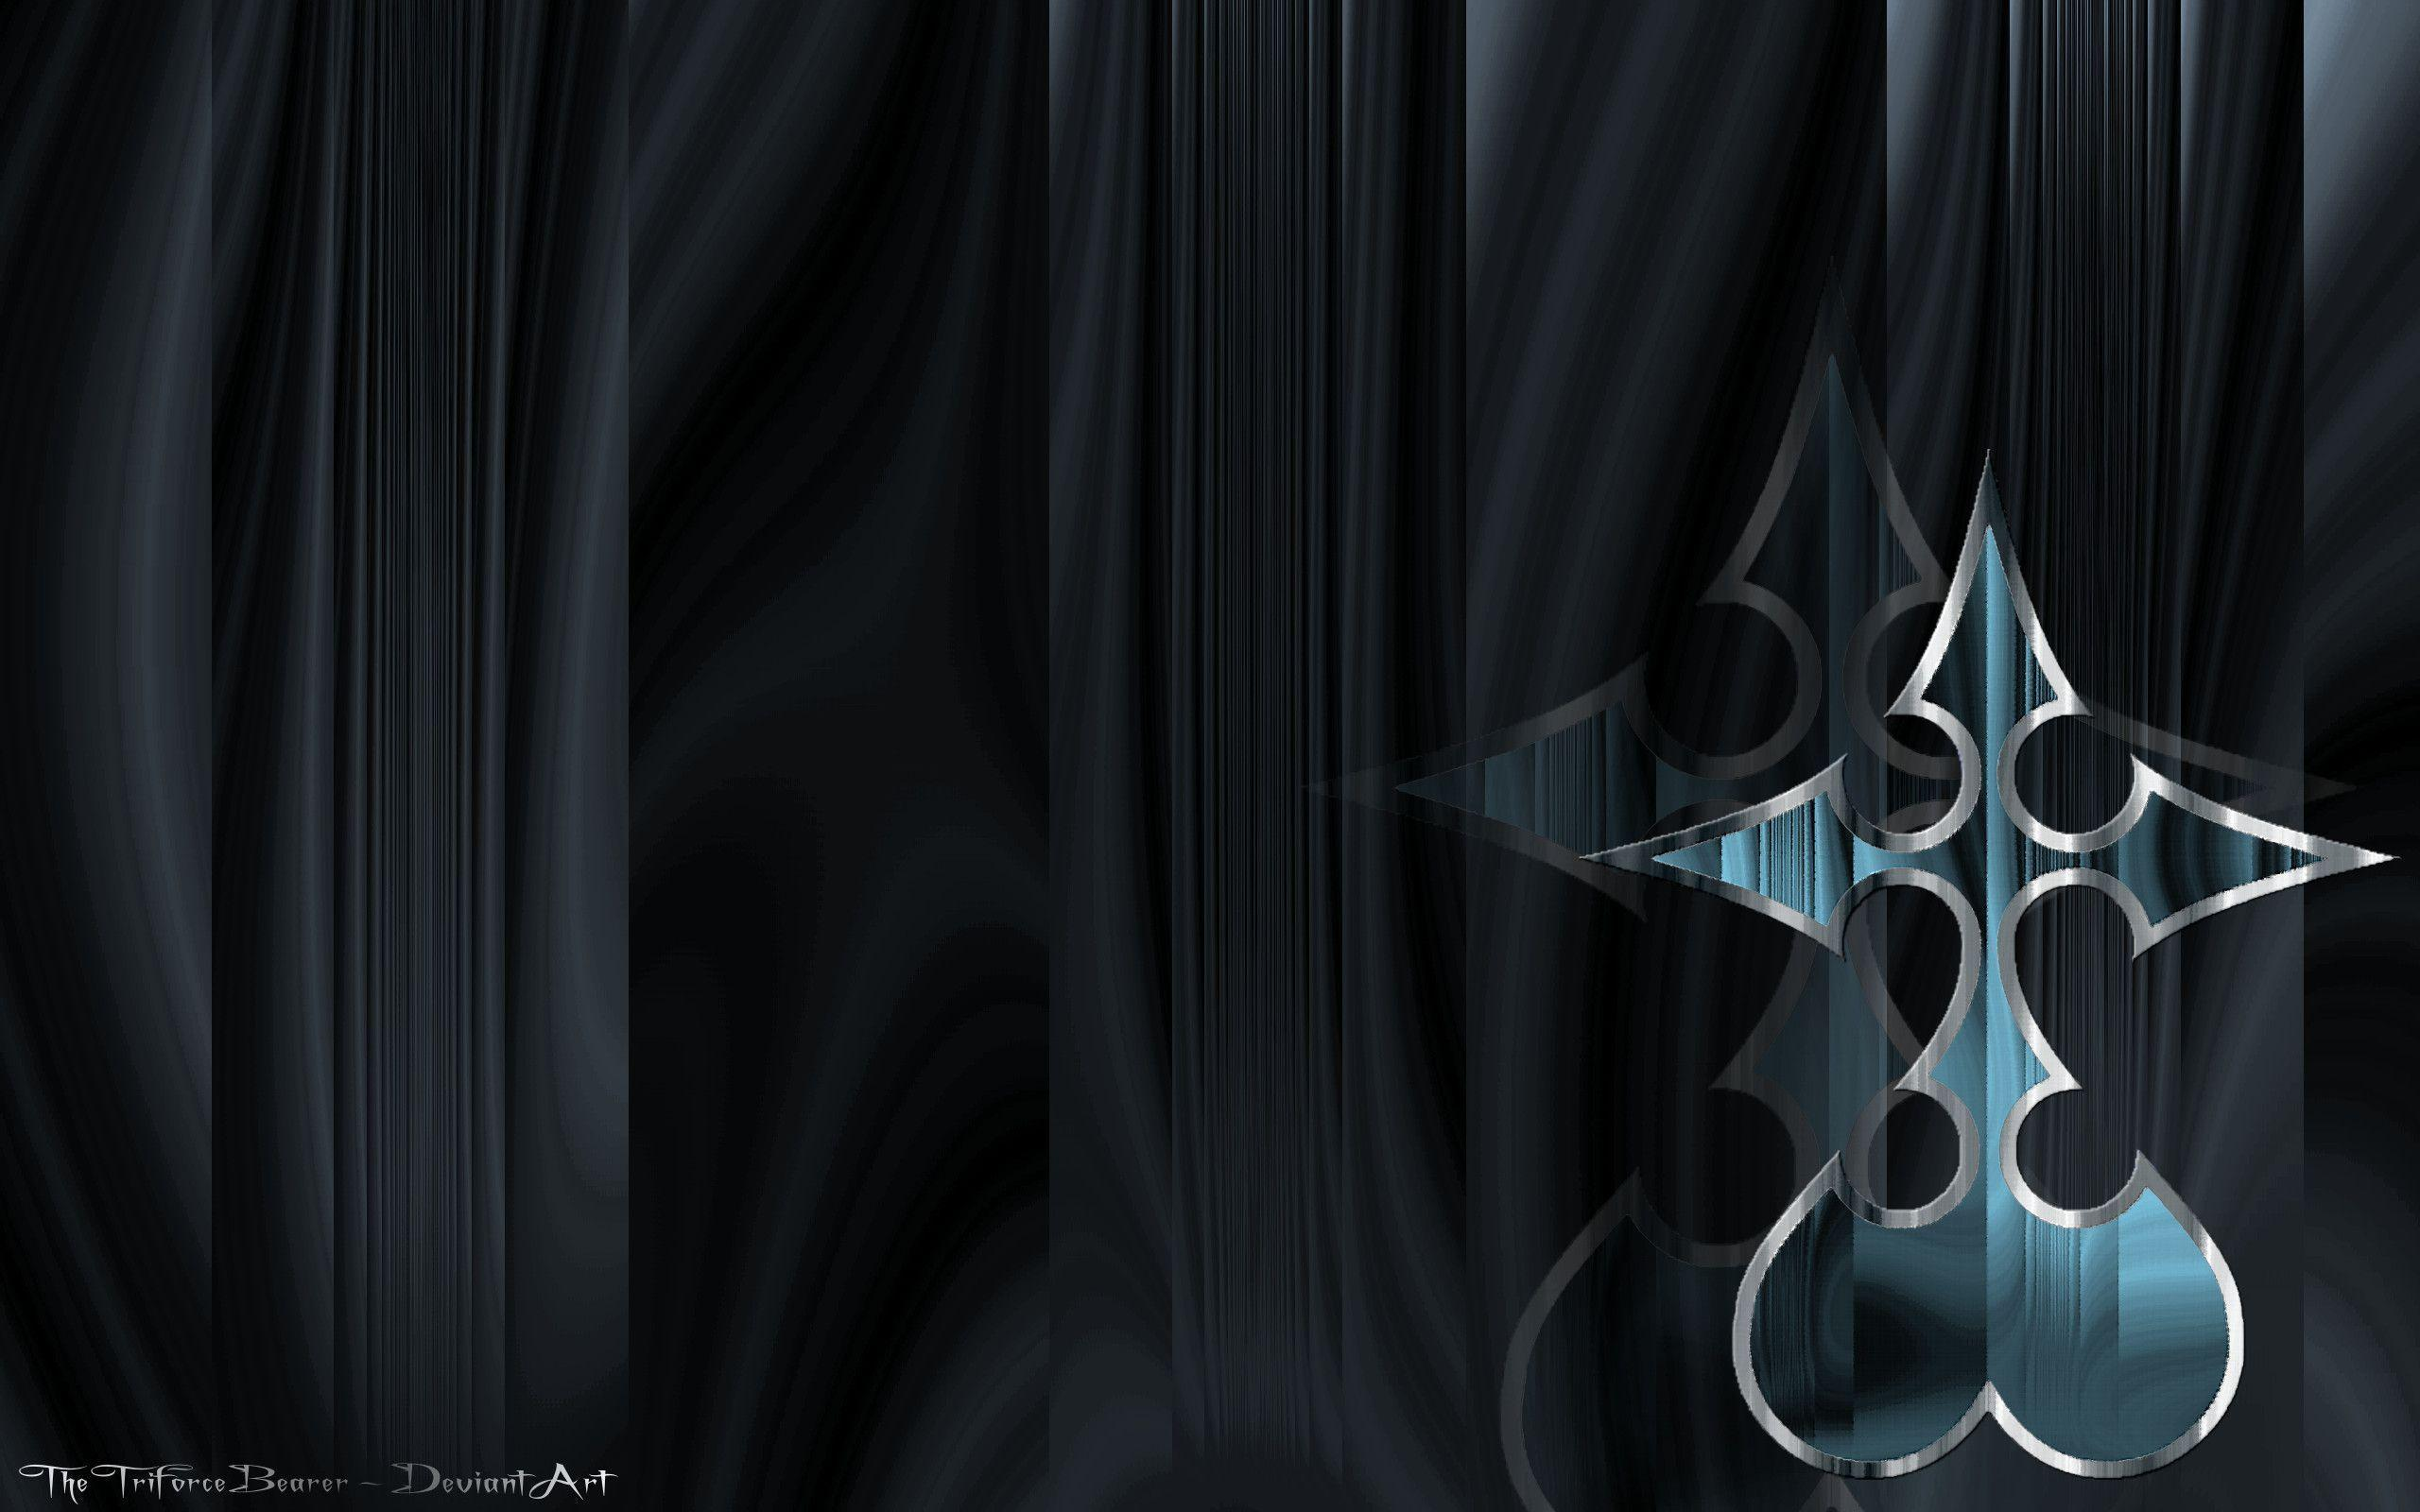 Kingdom Hearts Heartless Wallpapers - Wallpaper Cave Kingdom Hearts Symbols Wallpaper